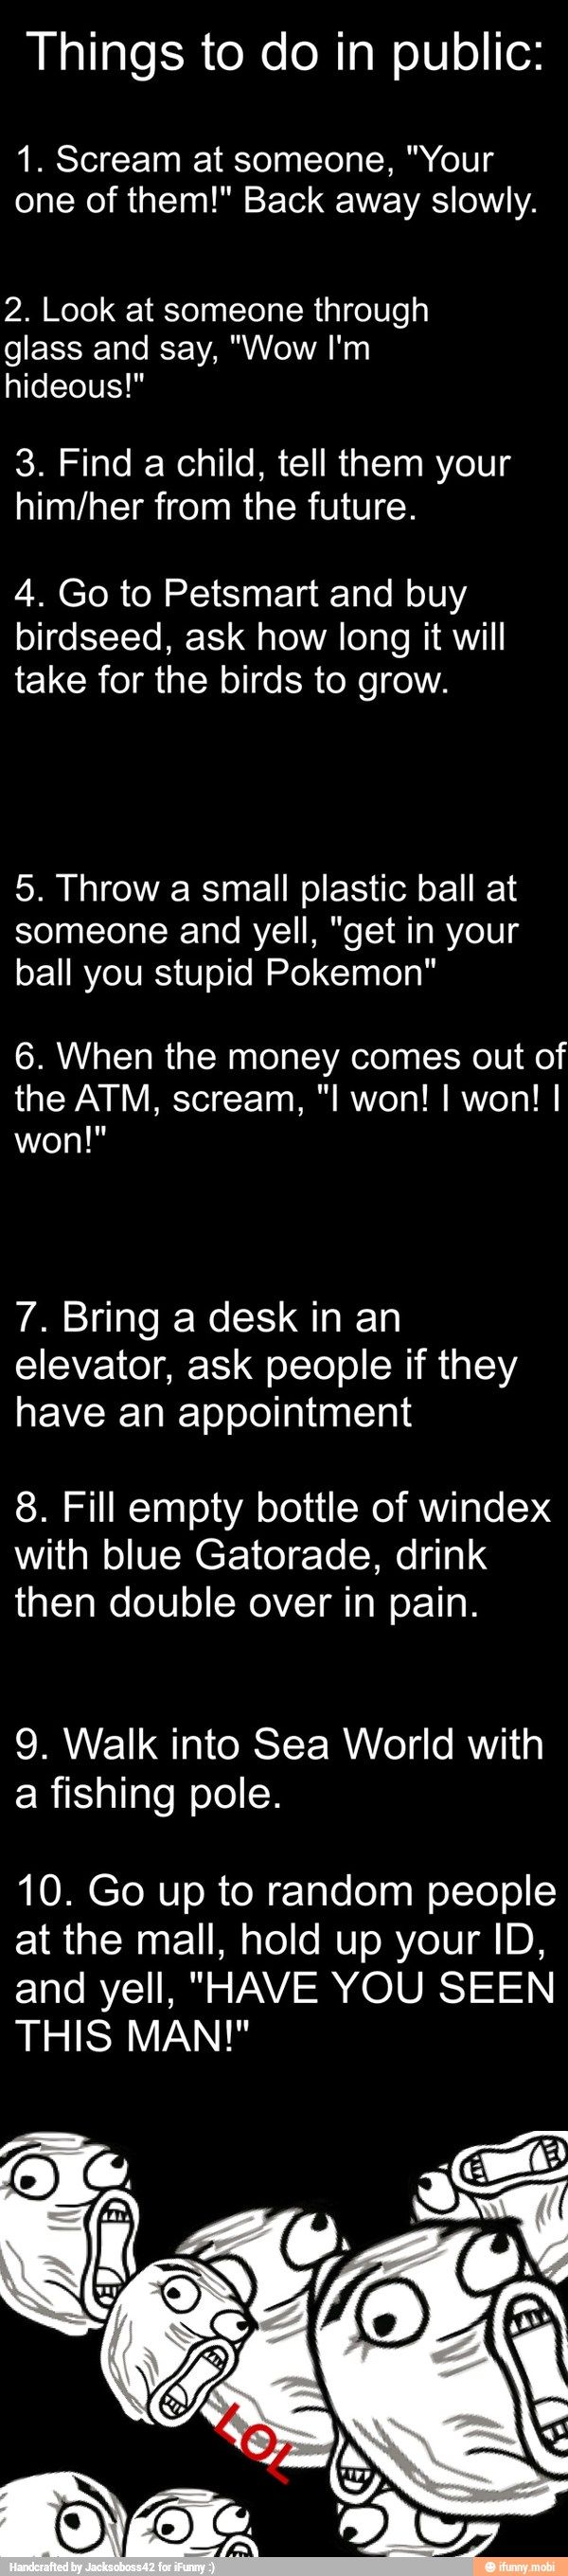 I want to do these but someone would probably call the cops. And the Windex one someone would call the ambulance and you would get in big trouble!